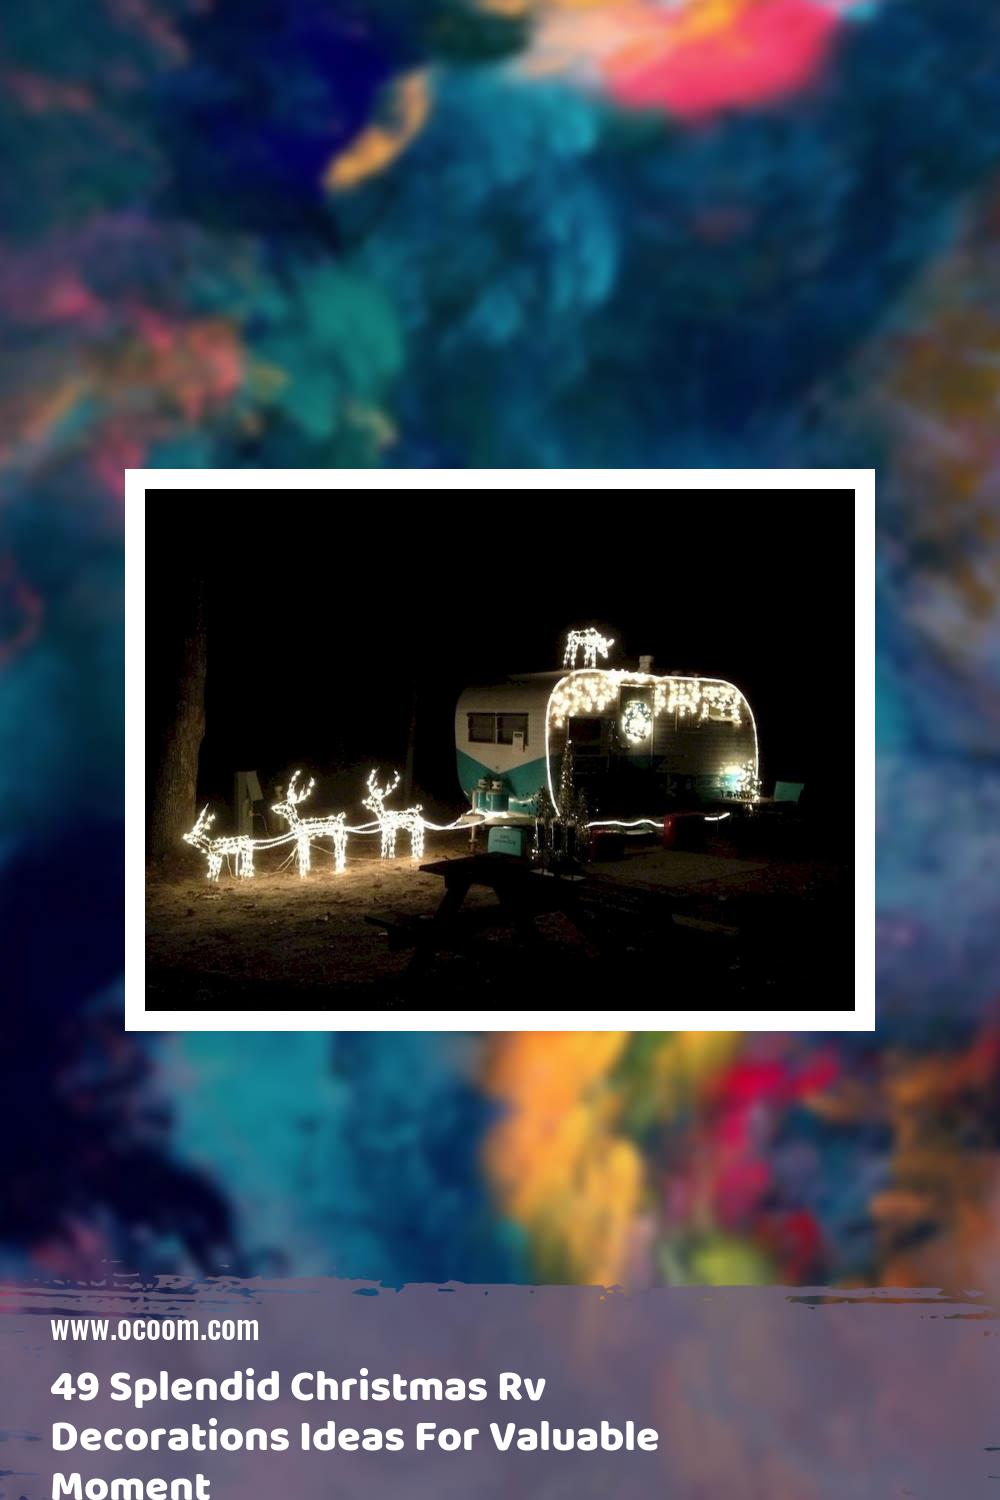 49 Splendid Christmas Rv Decorations Ideas For Valuable Moment 13